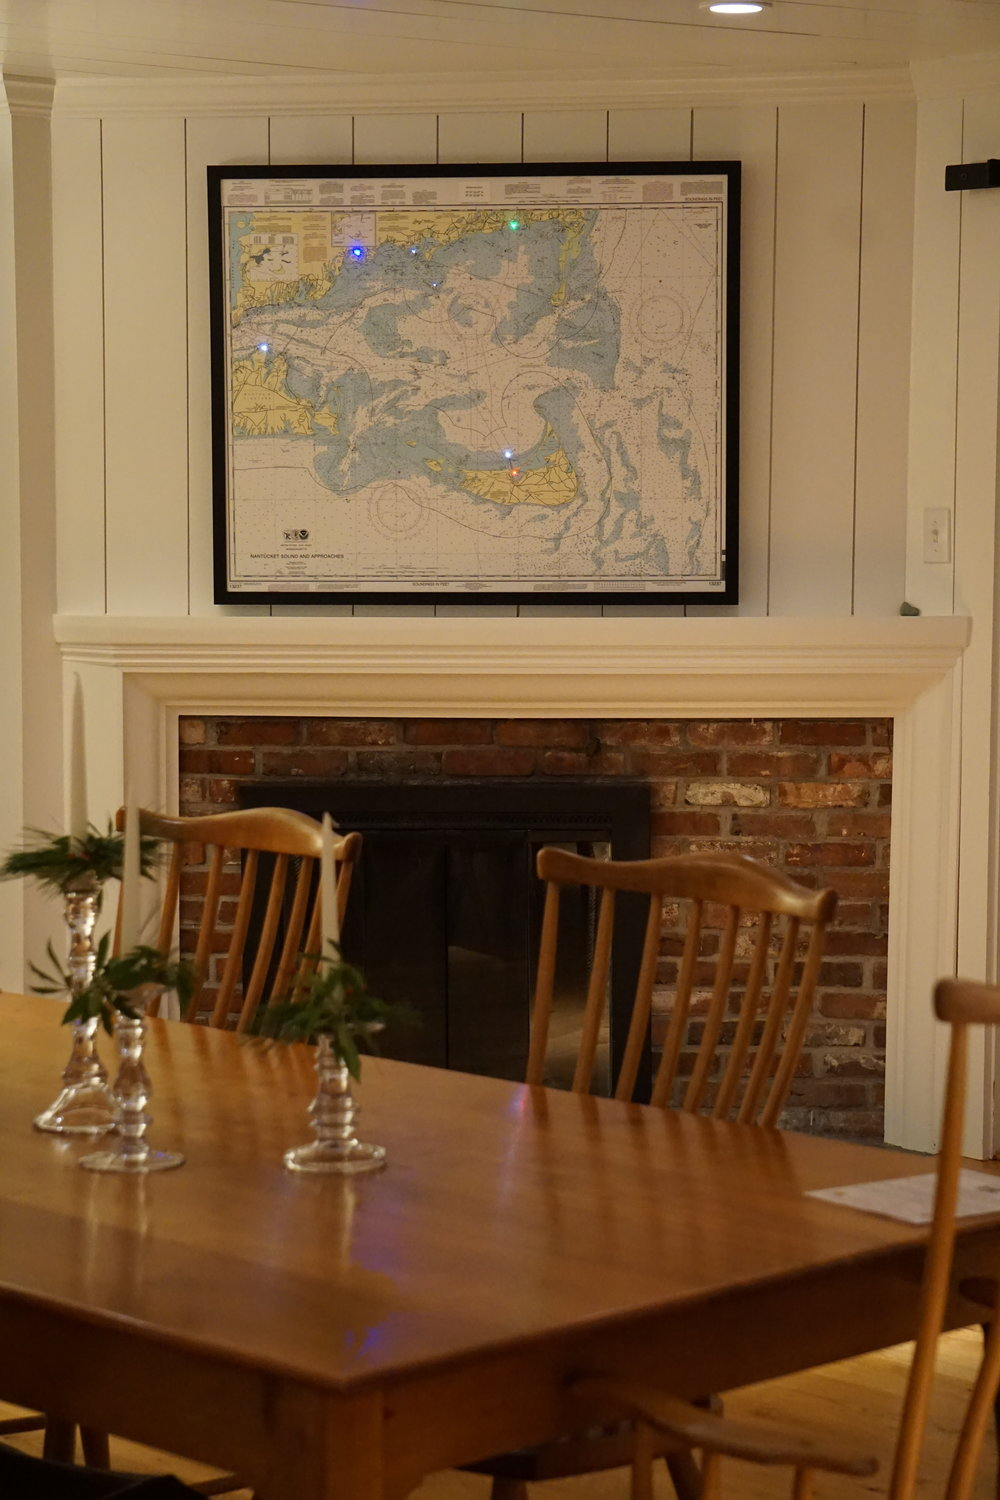 lit Nautical map cape cod